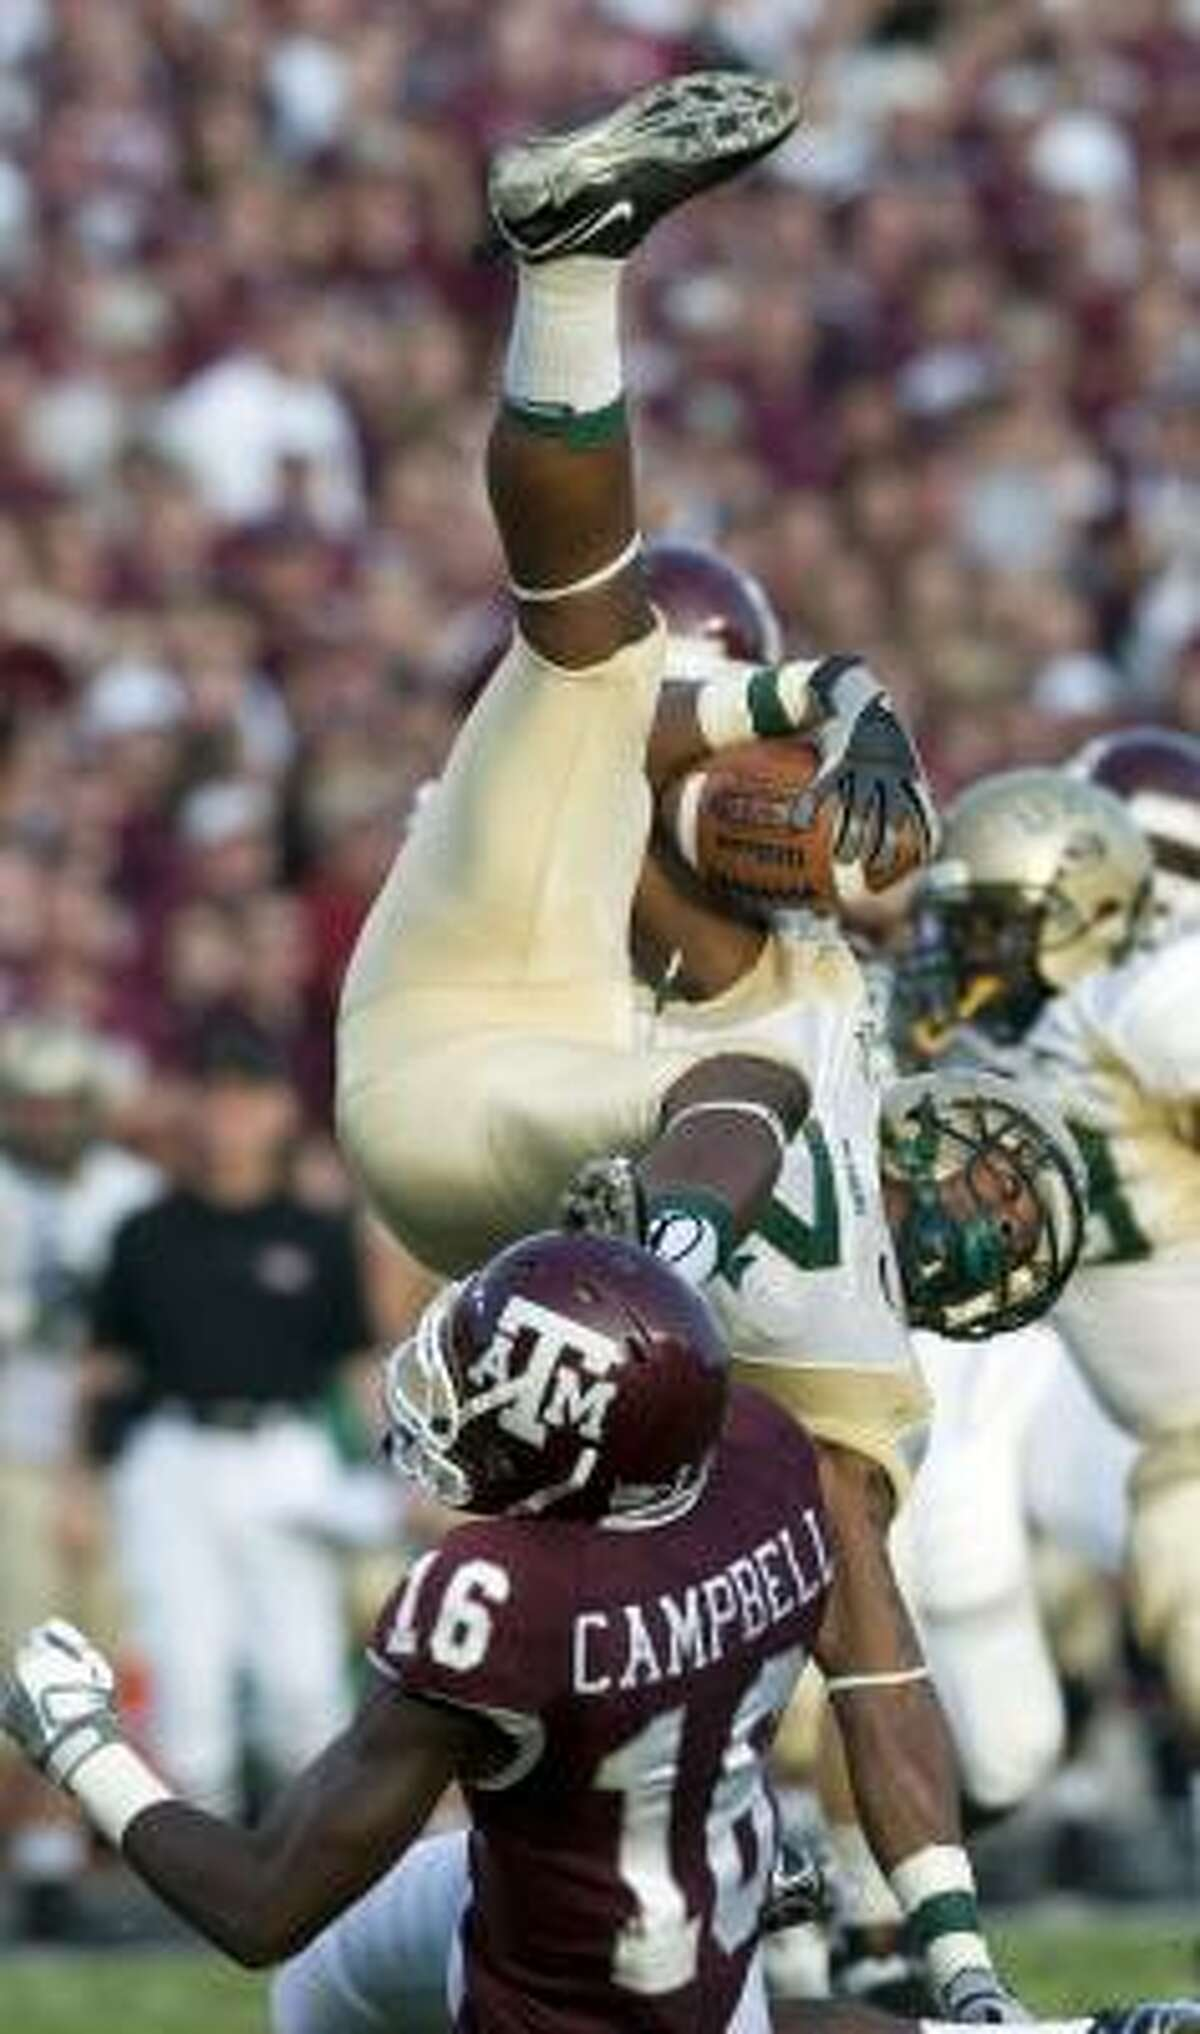 UAB's Frantrell Forrest, top, is tackled by Texas A&M's Stephen Campbell on a kickoff return during the first quarter Saturday.